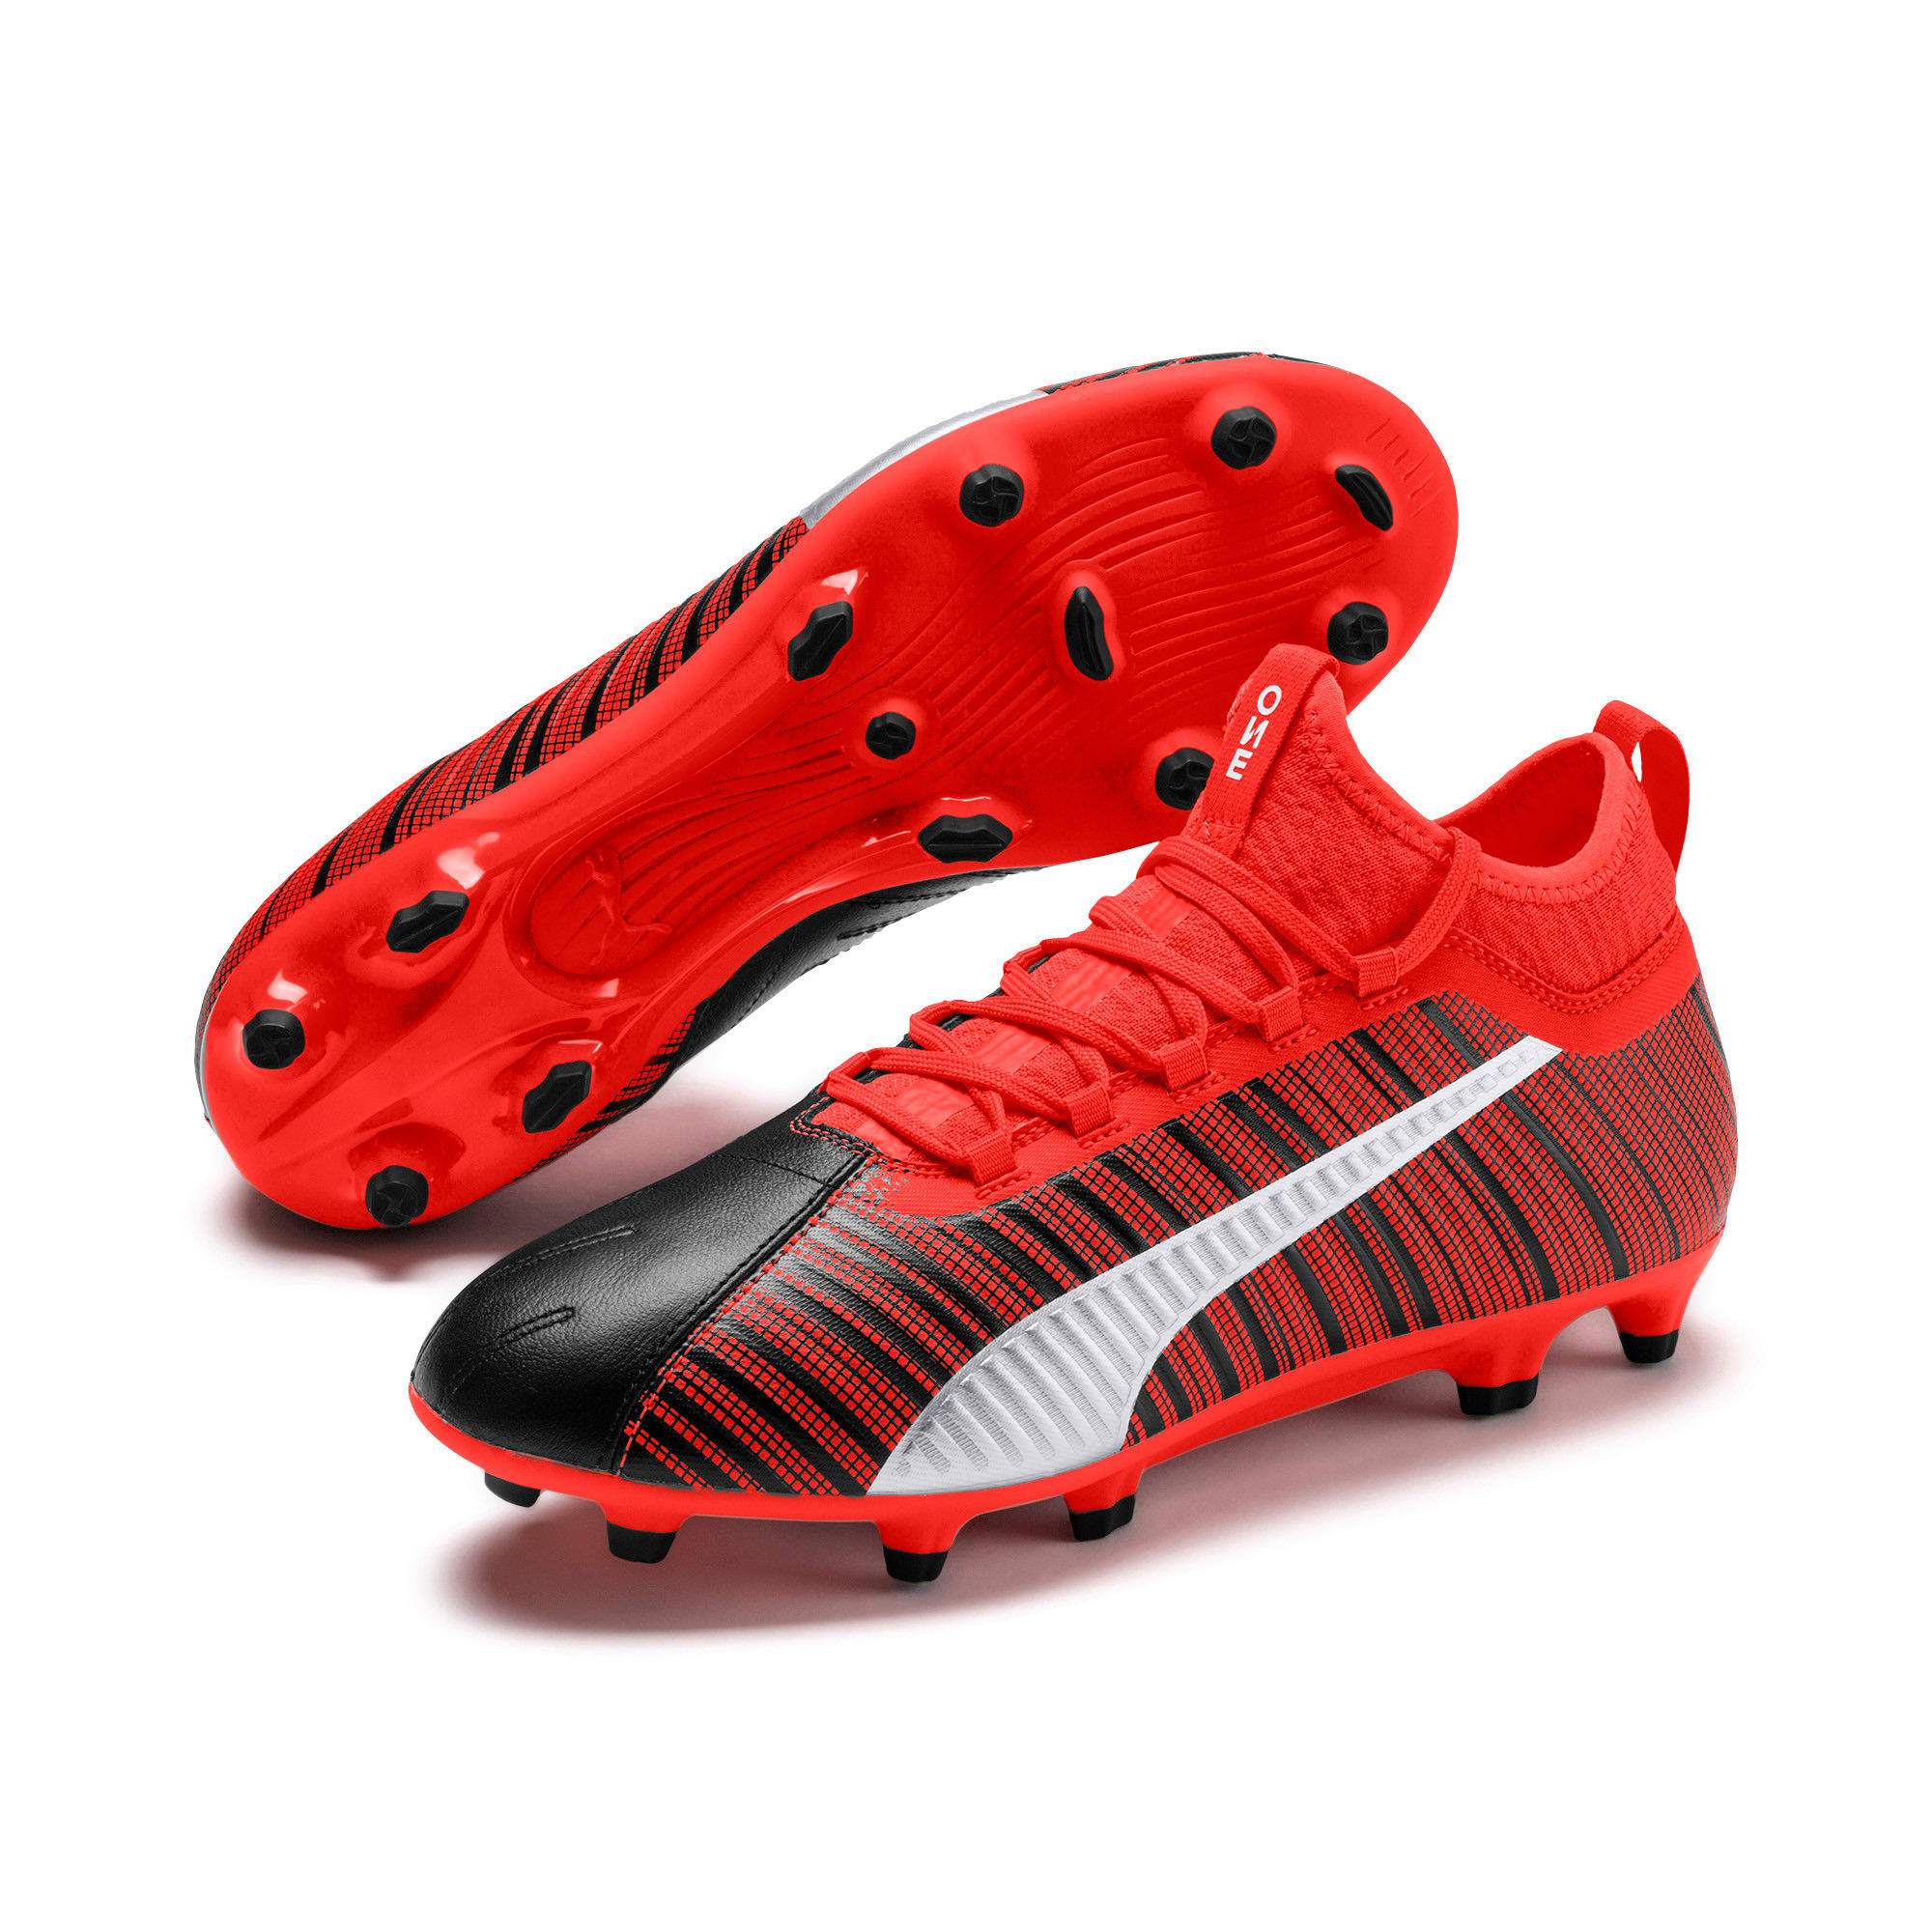 Thumbnail 3 of PUMA ONE 5.3 FG/AG Men's Football Boots, Black-Nrgy Red-Aged Silver, medium